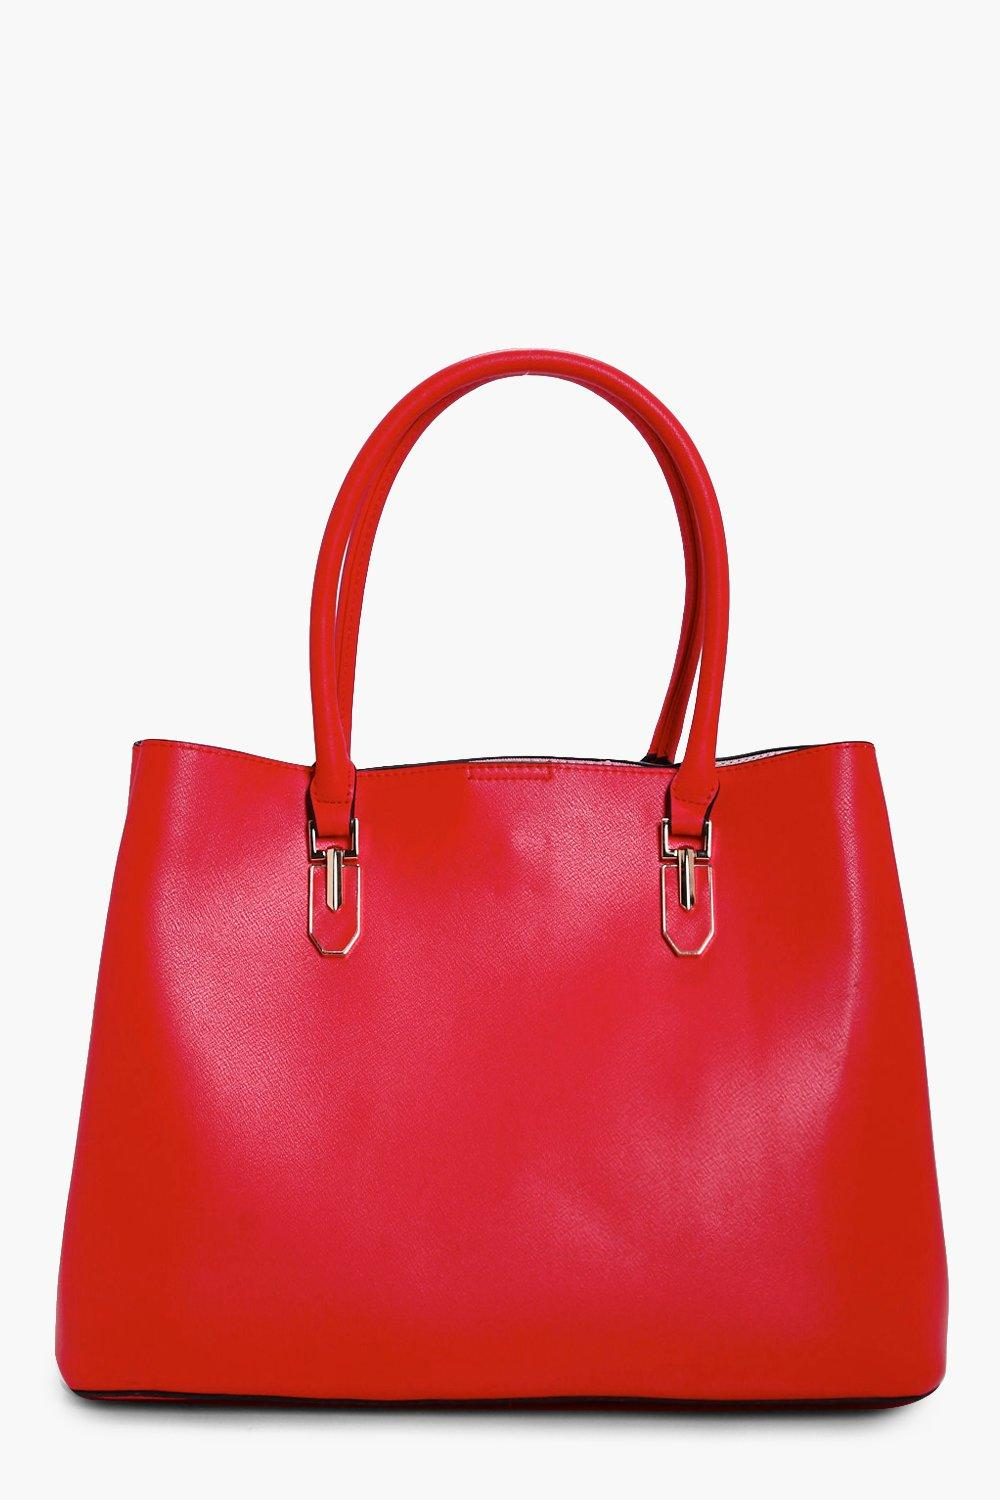 Metal Detail Tote - red - Hannah Metal Detail Tote